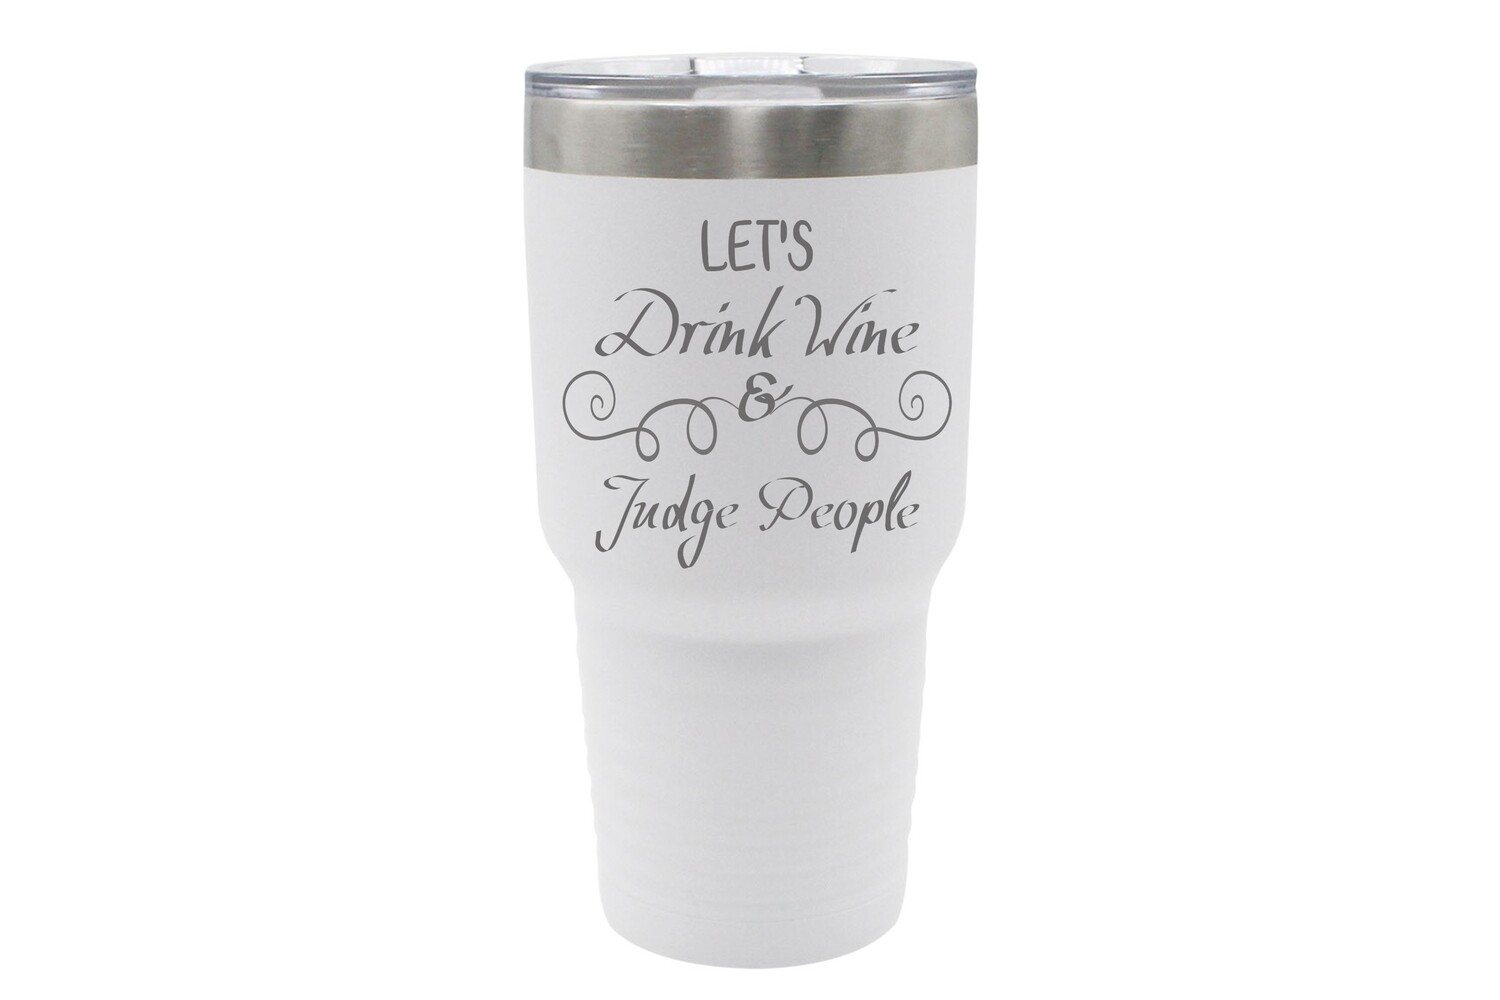 Let's Drink Wine & Judge People Insulated Tumbler 30 oz